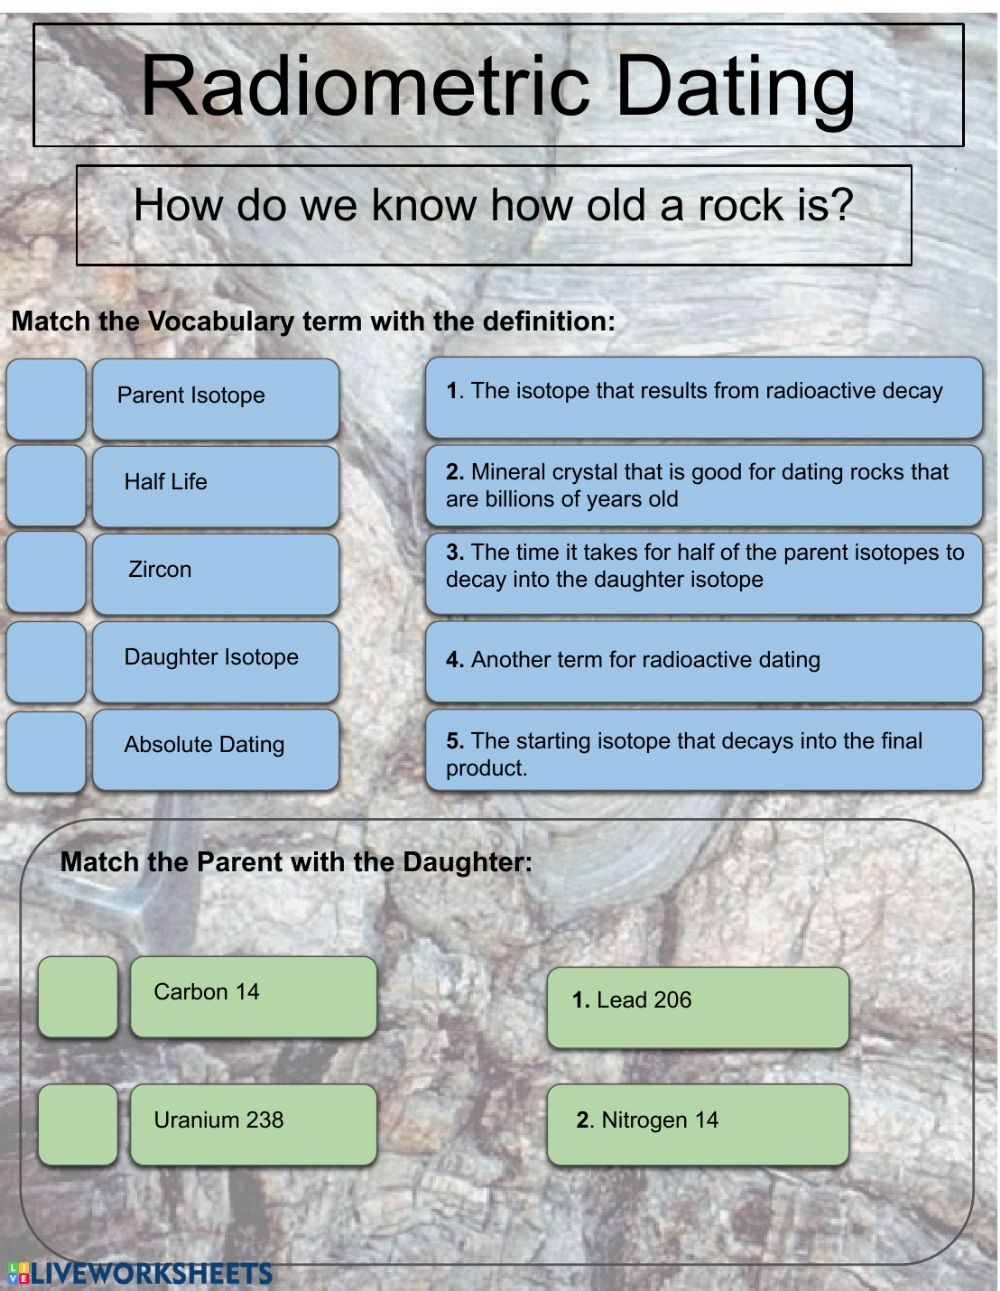 Radiometric Dating worksheet